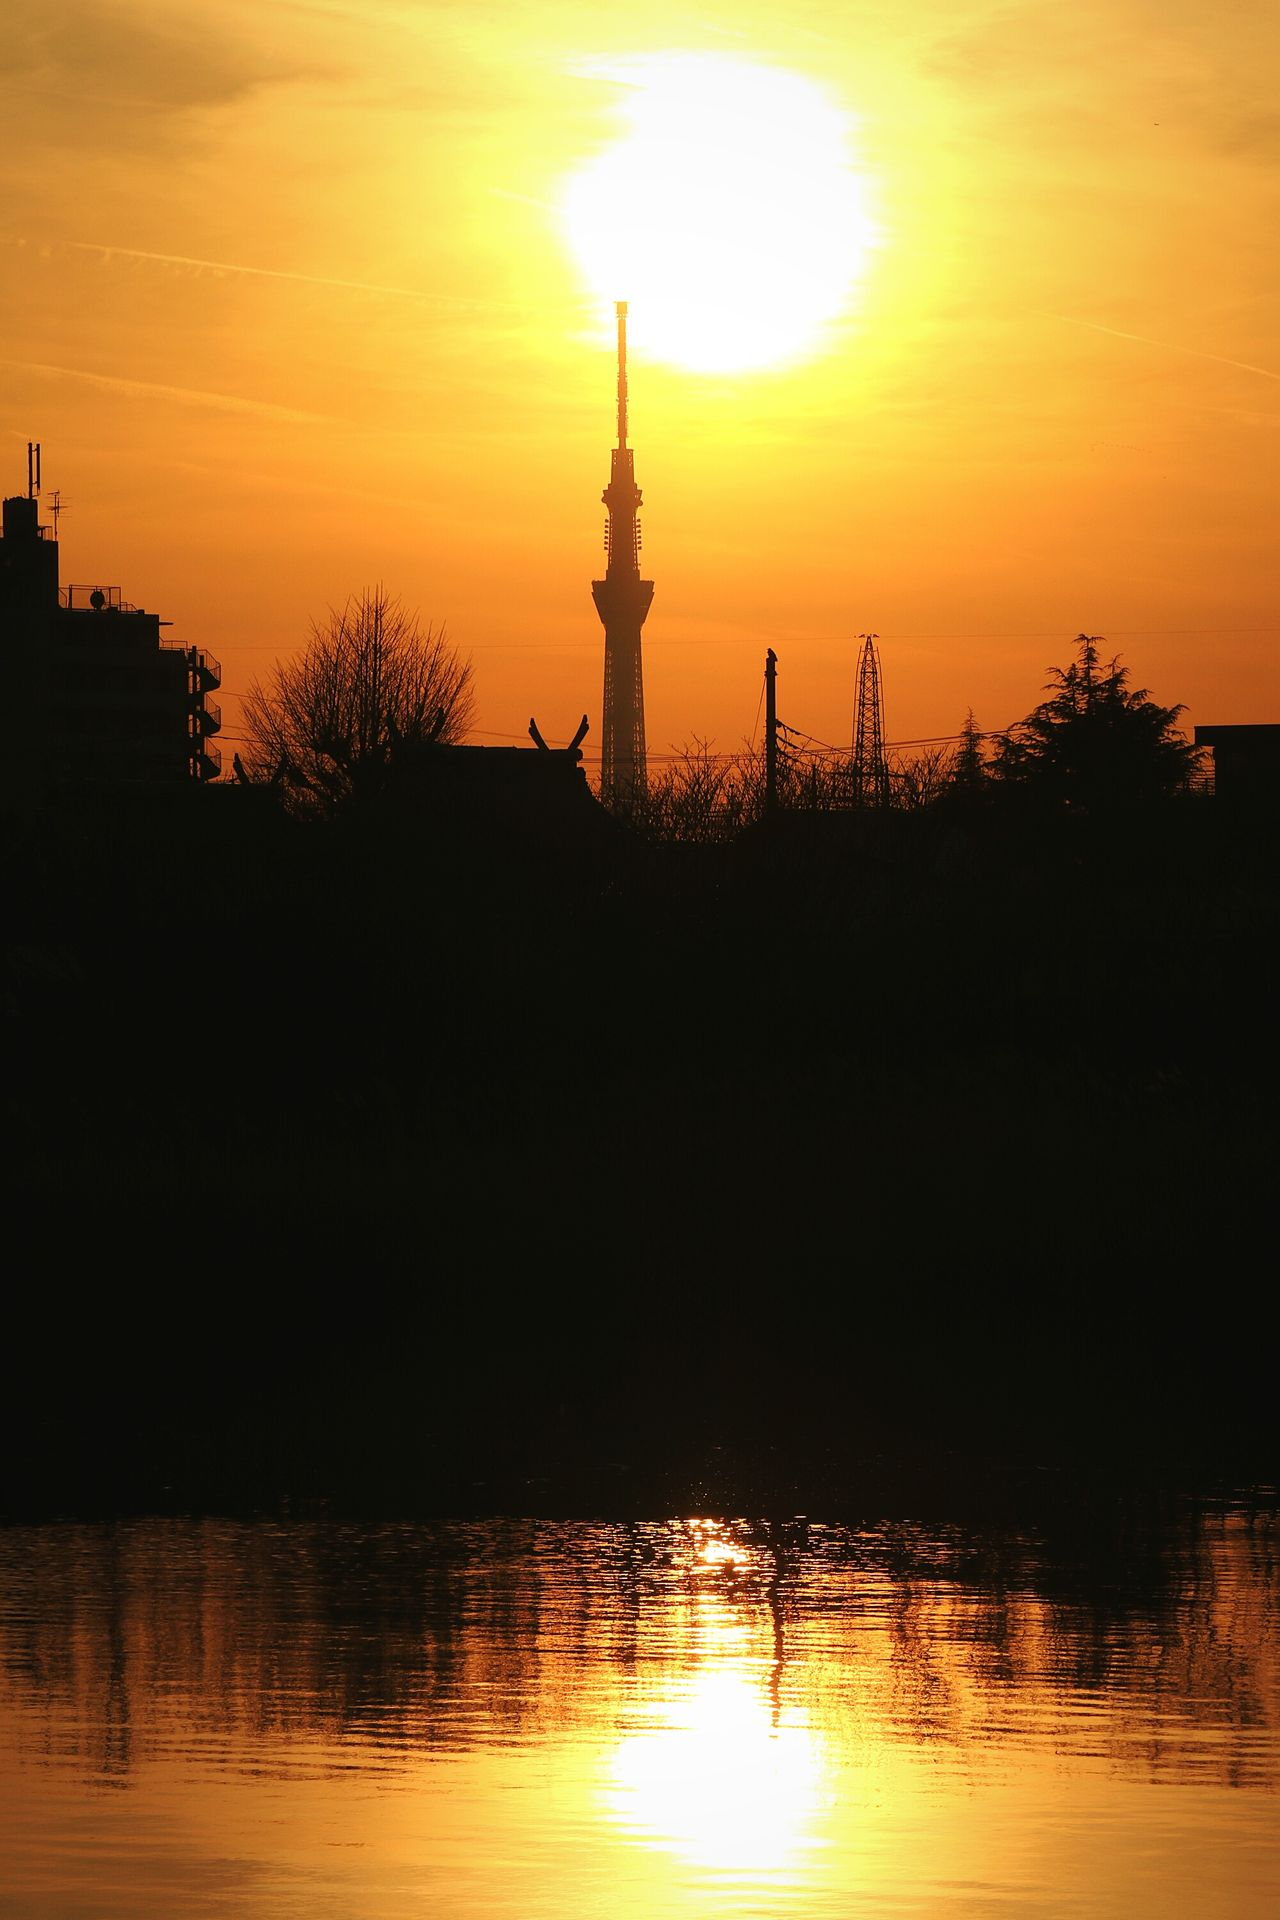 Sunset Tower Sky Silhouette Reflection Tokyo Skytree Tokyoskytree Japan Sunset_collection Gradation Orangesky Sunsets Dramatic Sky Silhouette Orange Color Sun Water River Trees And Sky